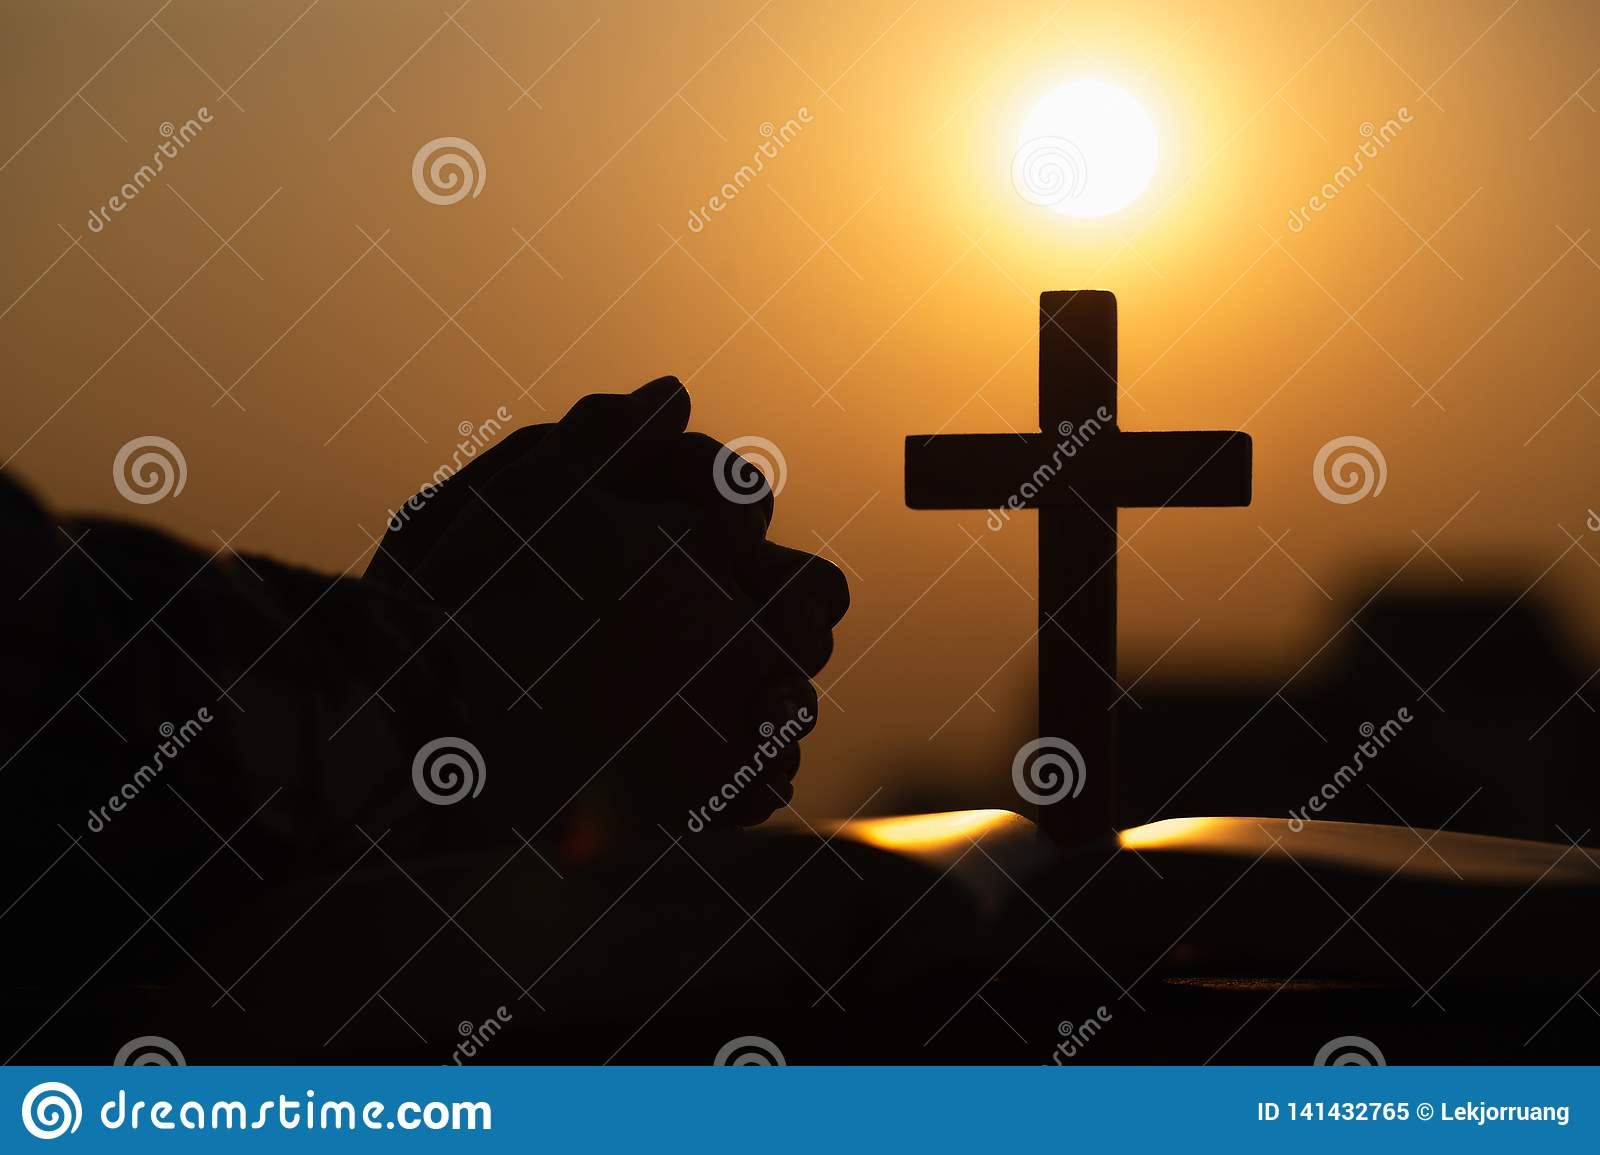 Silhouette of young woman praying with crosses and bibles at sunrise, Christian Religion concept background